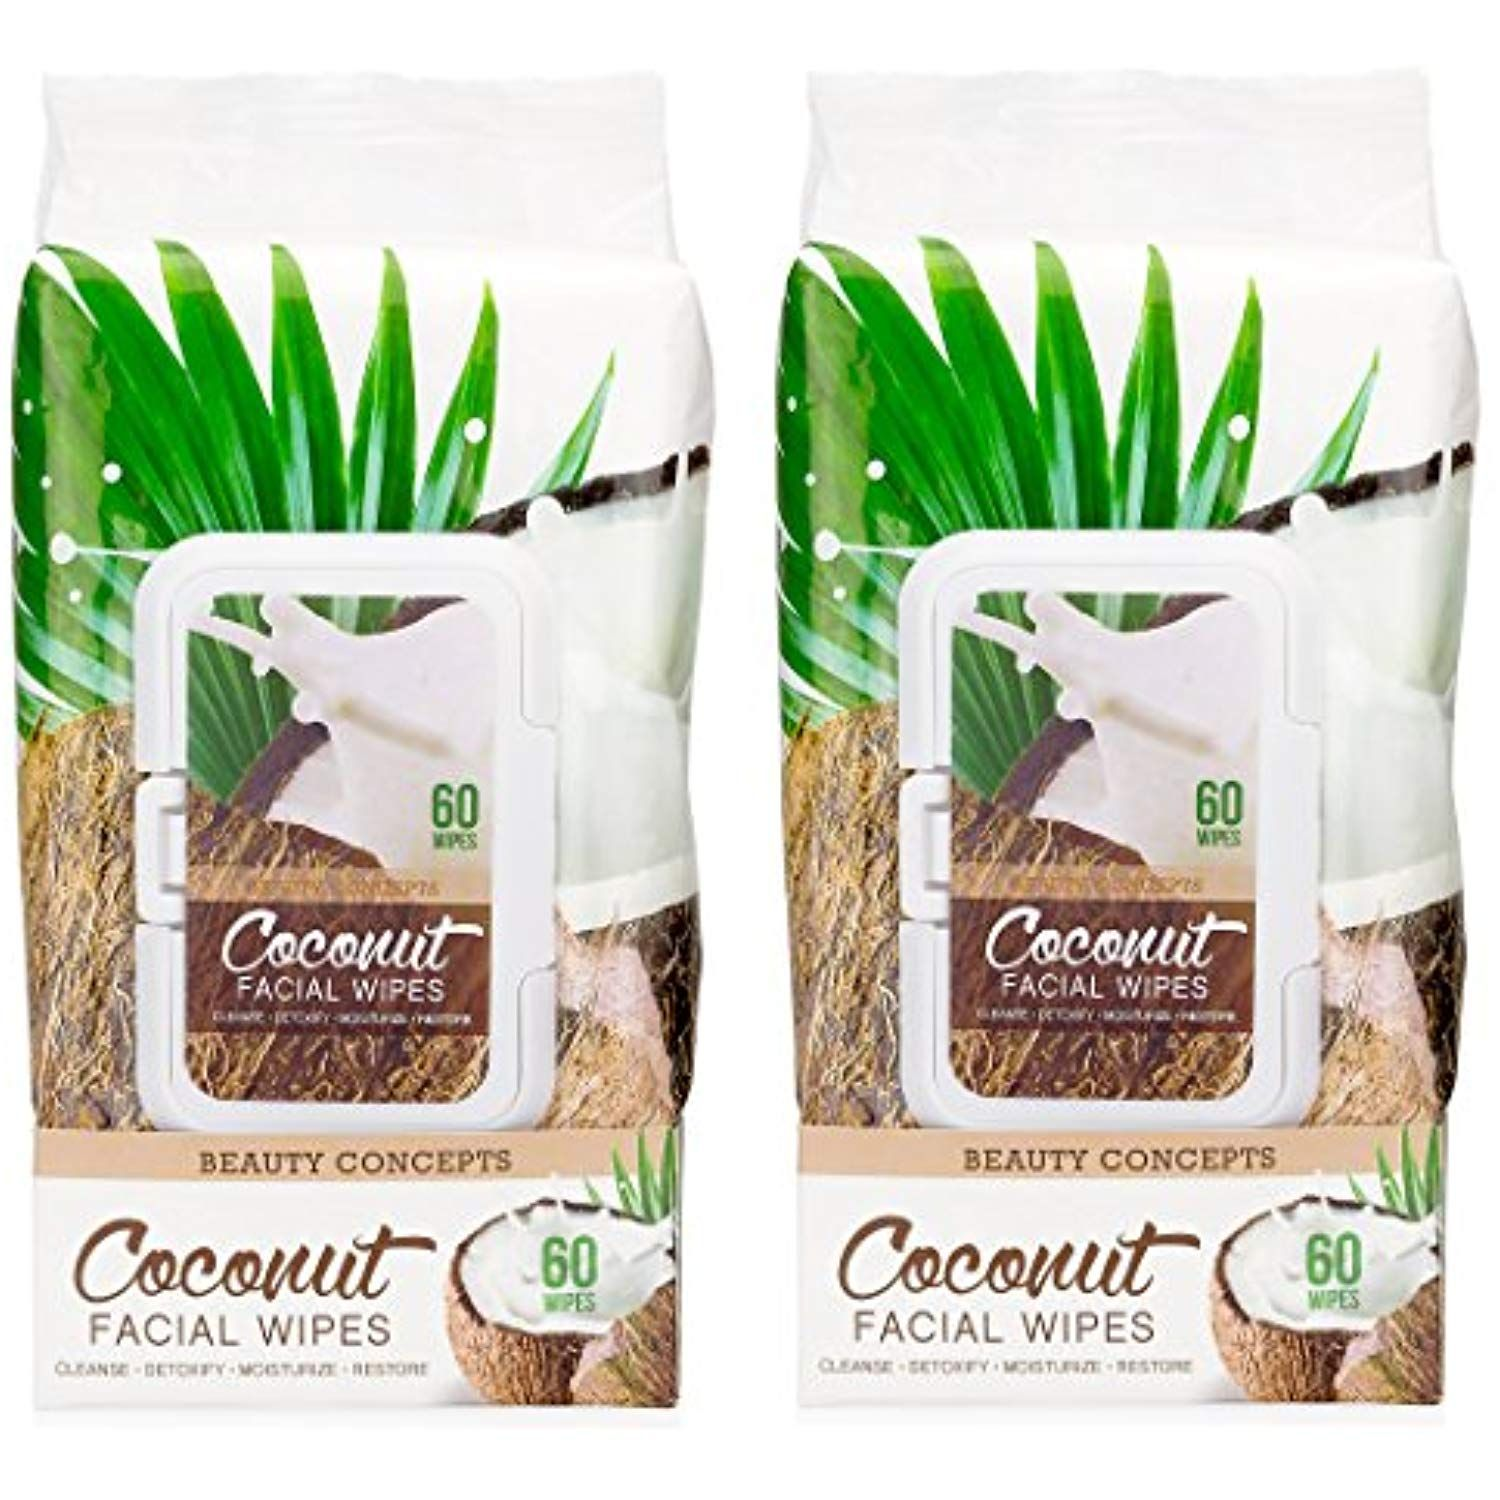 Beauty Concepts Coconut Facial Cleansing Wipes 60 CT